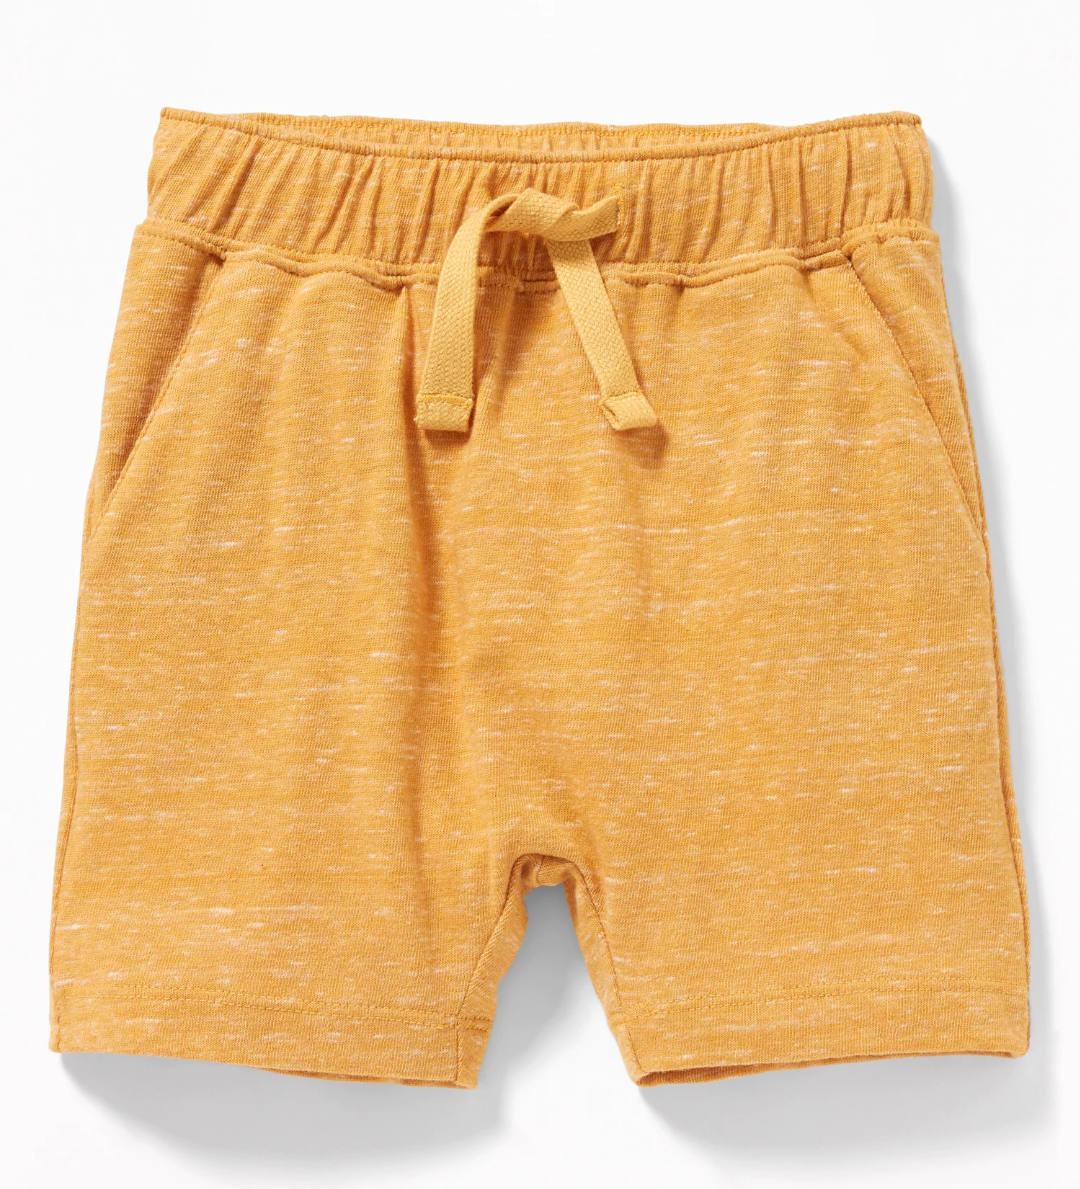 U-Shapes Shorts in Sunflower Gold